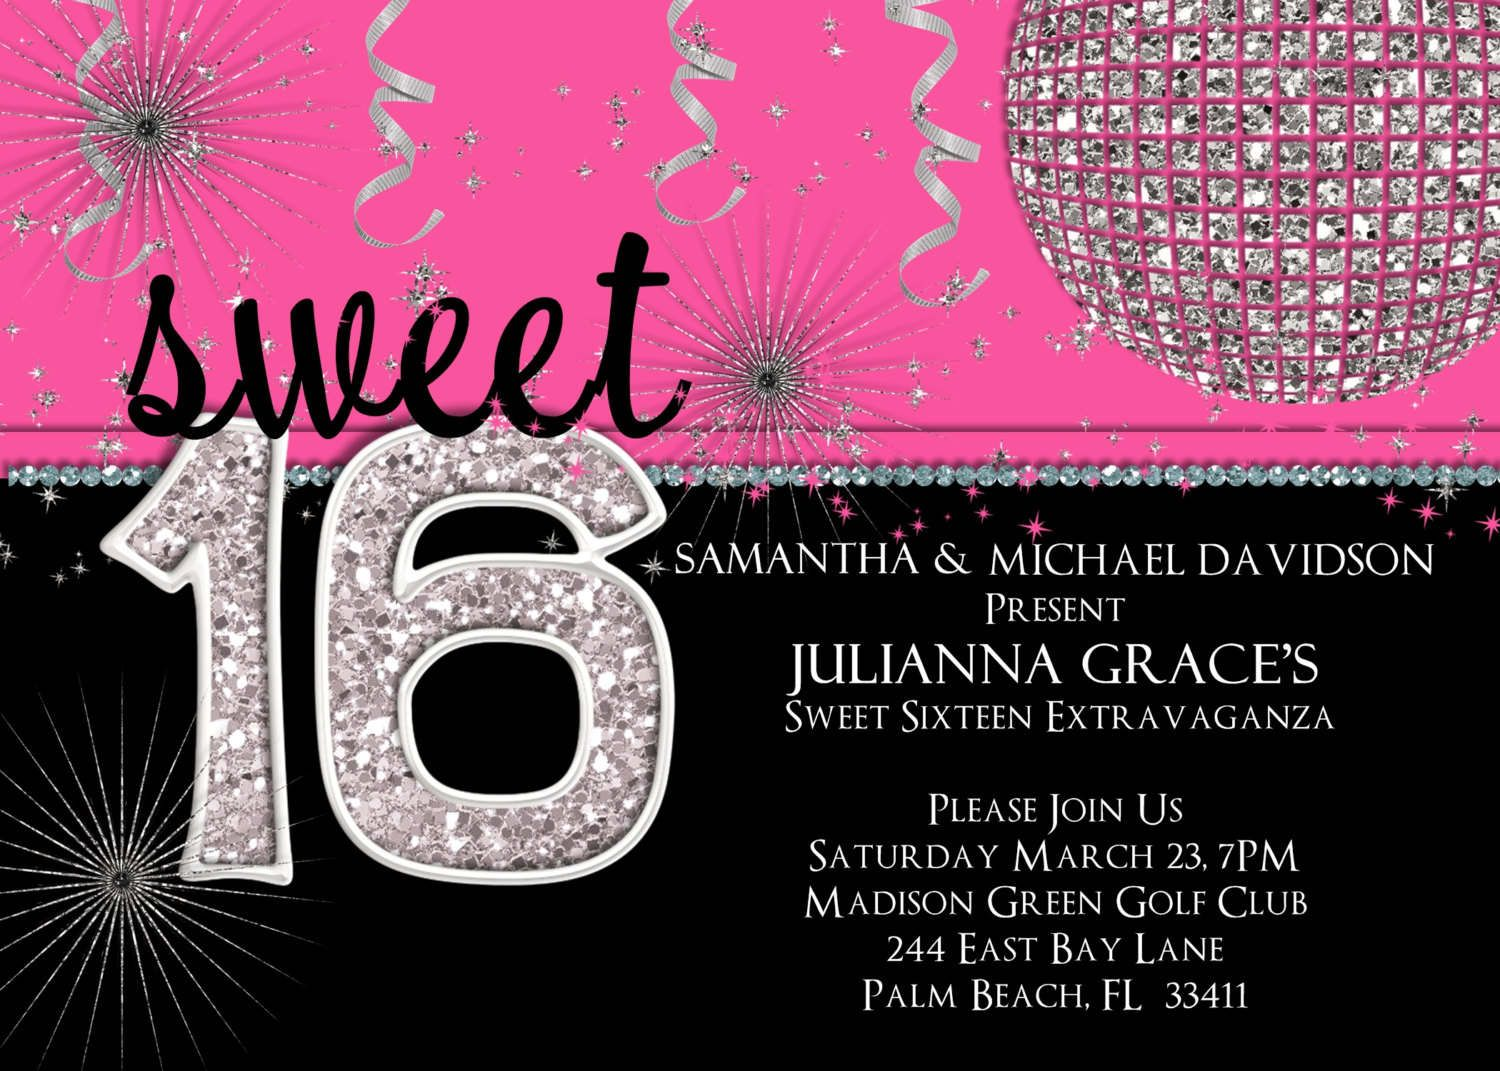 Sweet Sixteen Invitations Sweet Invitation Templates With Black - Sweet 16 party invitations templates